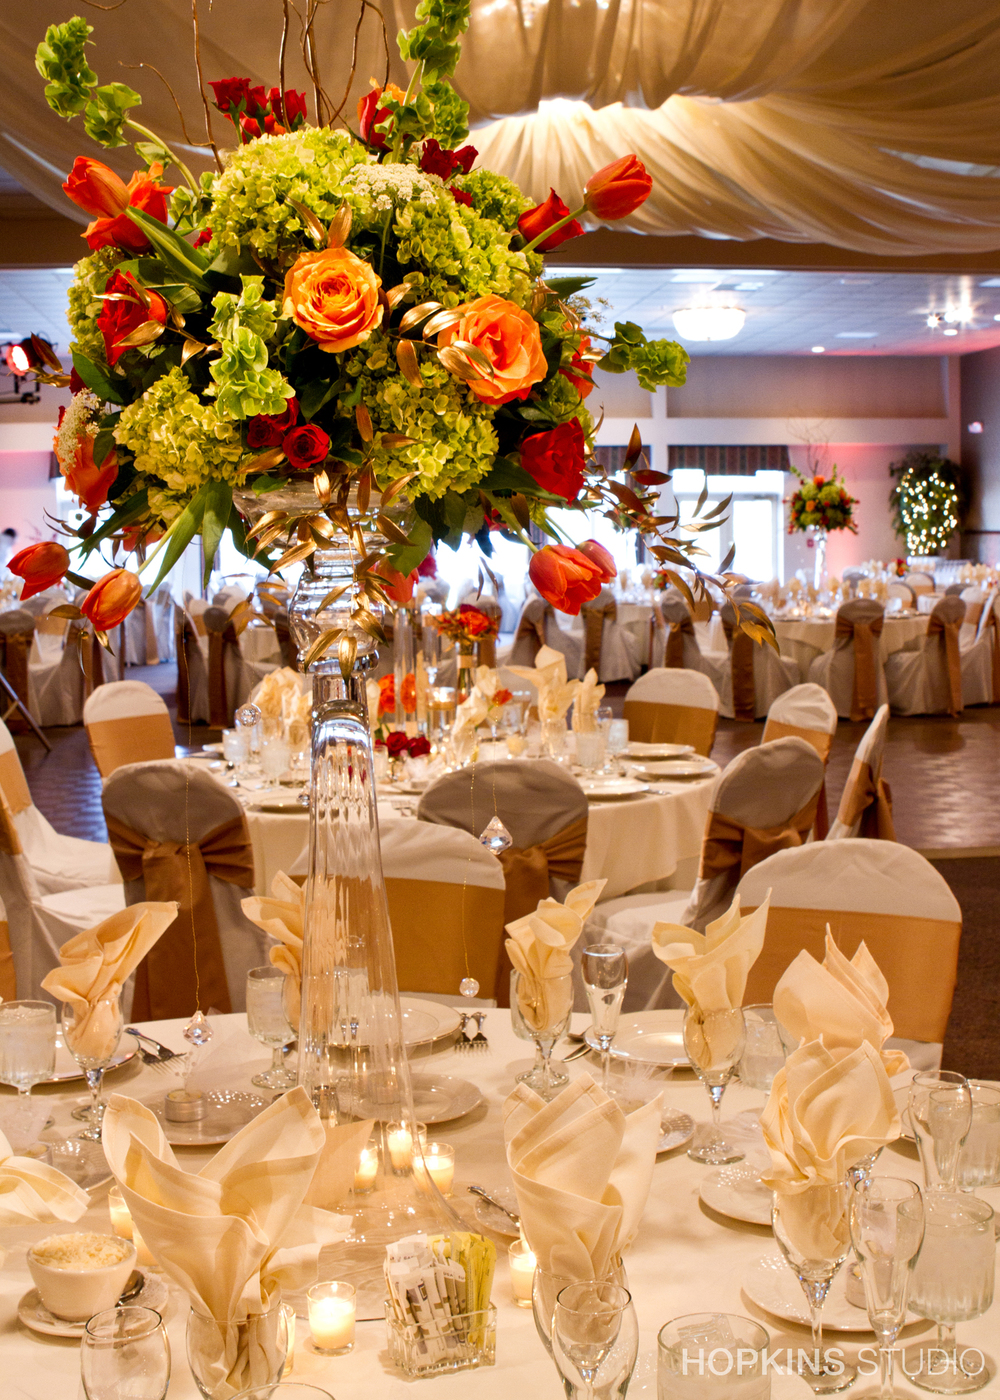 wedding-photography-Windsor-Park-Conference-Center-South-Bend-Indiana_25.jpg